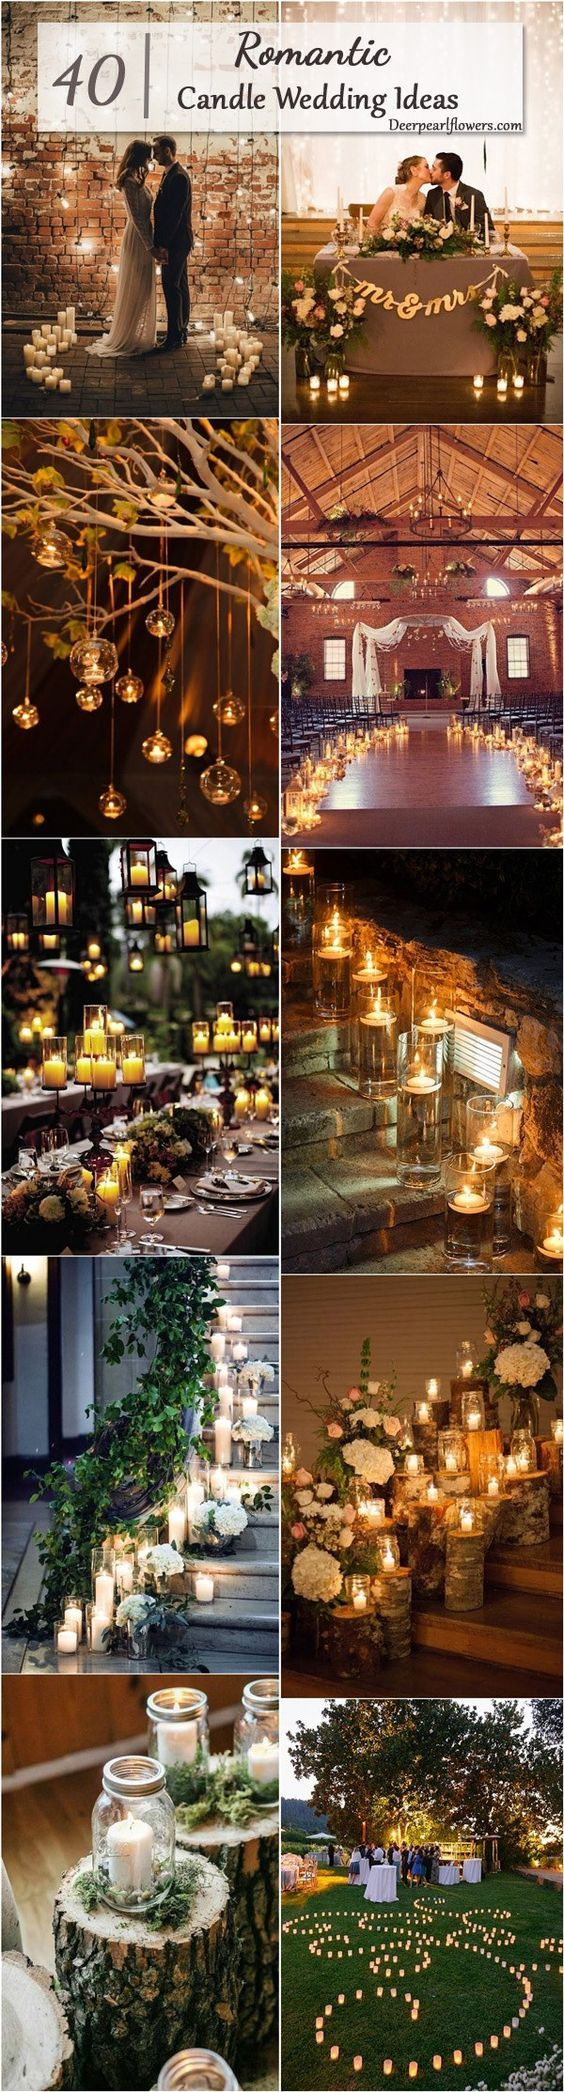 Rustic Country Wedding Ideas with Candles / http://www.deerpearlflowers.com/wedding-ideas-using-candles/4/: